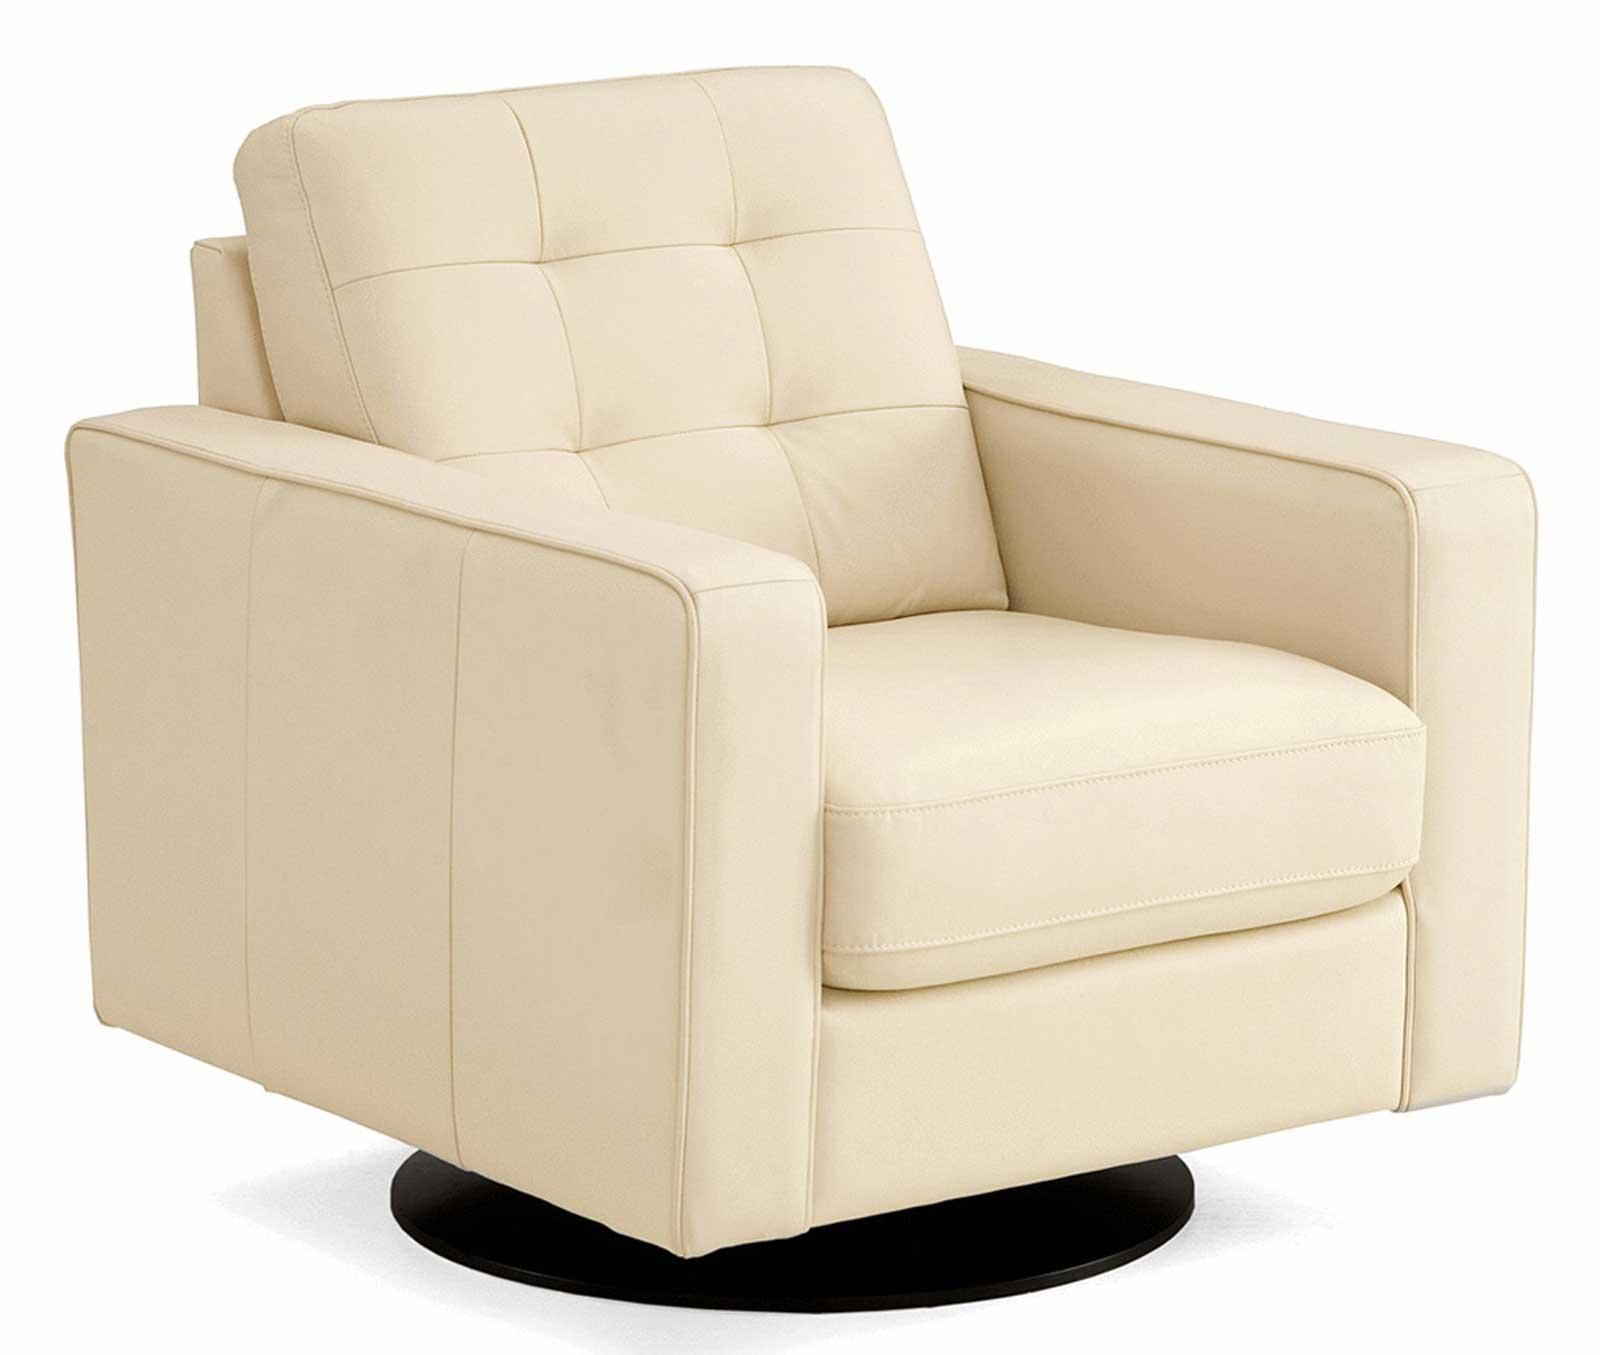 Splendid Design Inspiration Swivel Rocking Chairs For Living Room With Sofa Rocking Chairs (Image 19 of 20)